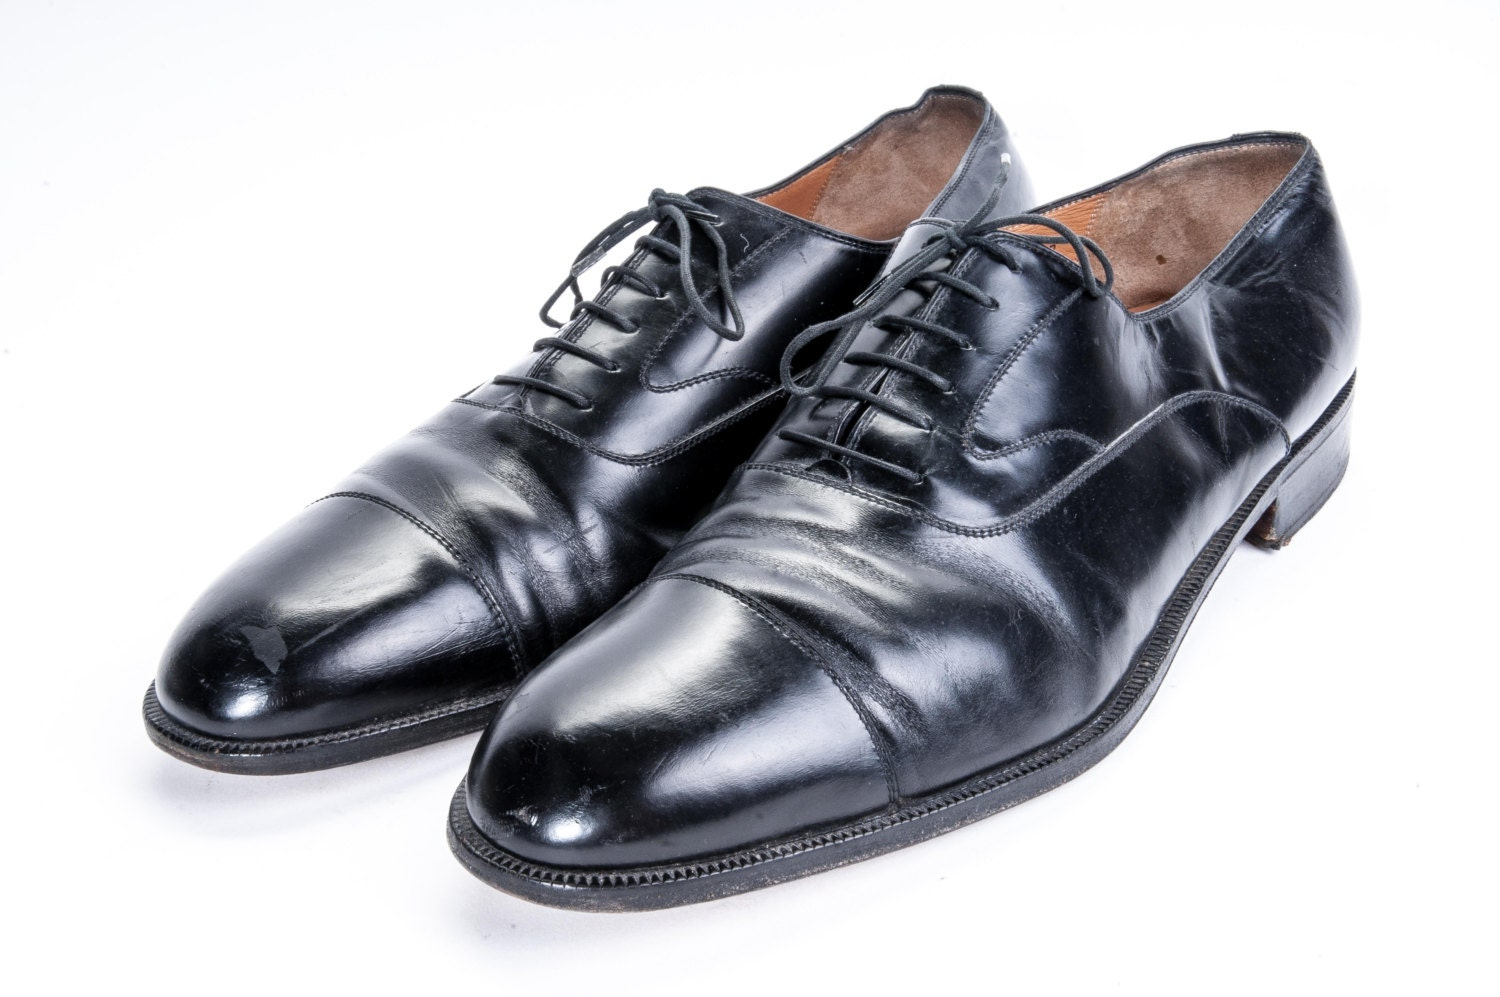 size 14 s dress shoes made in ferragamo in italy